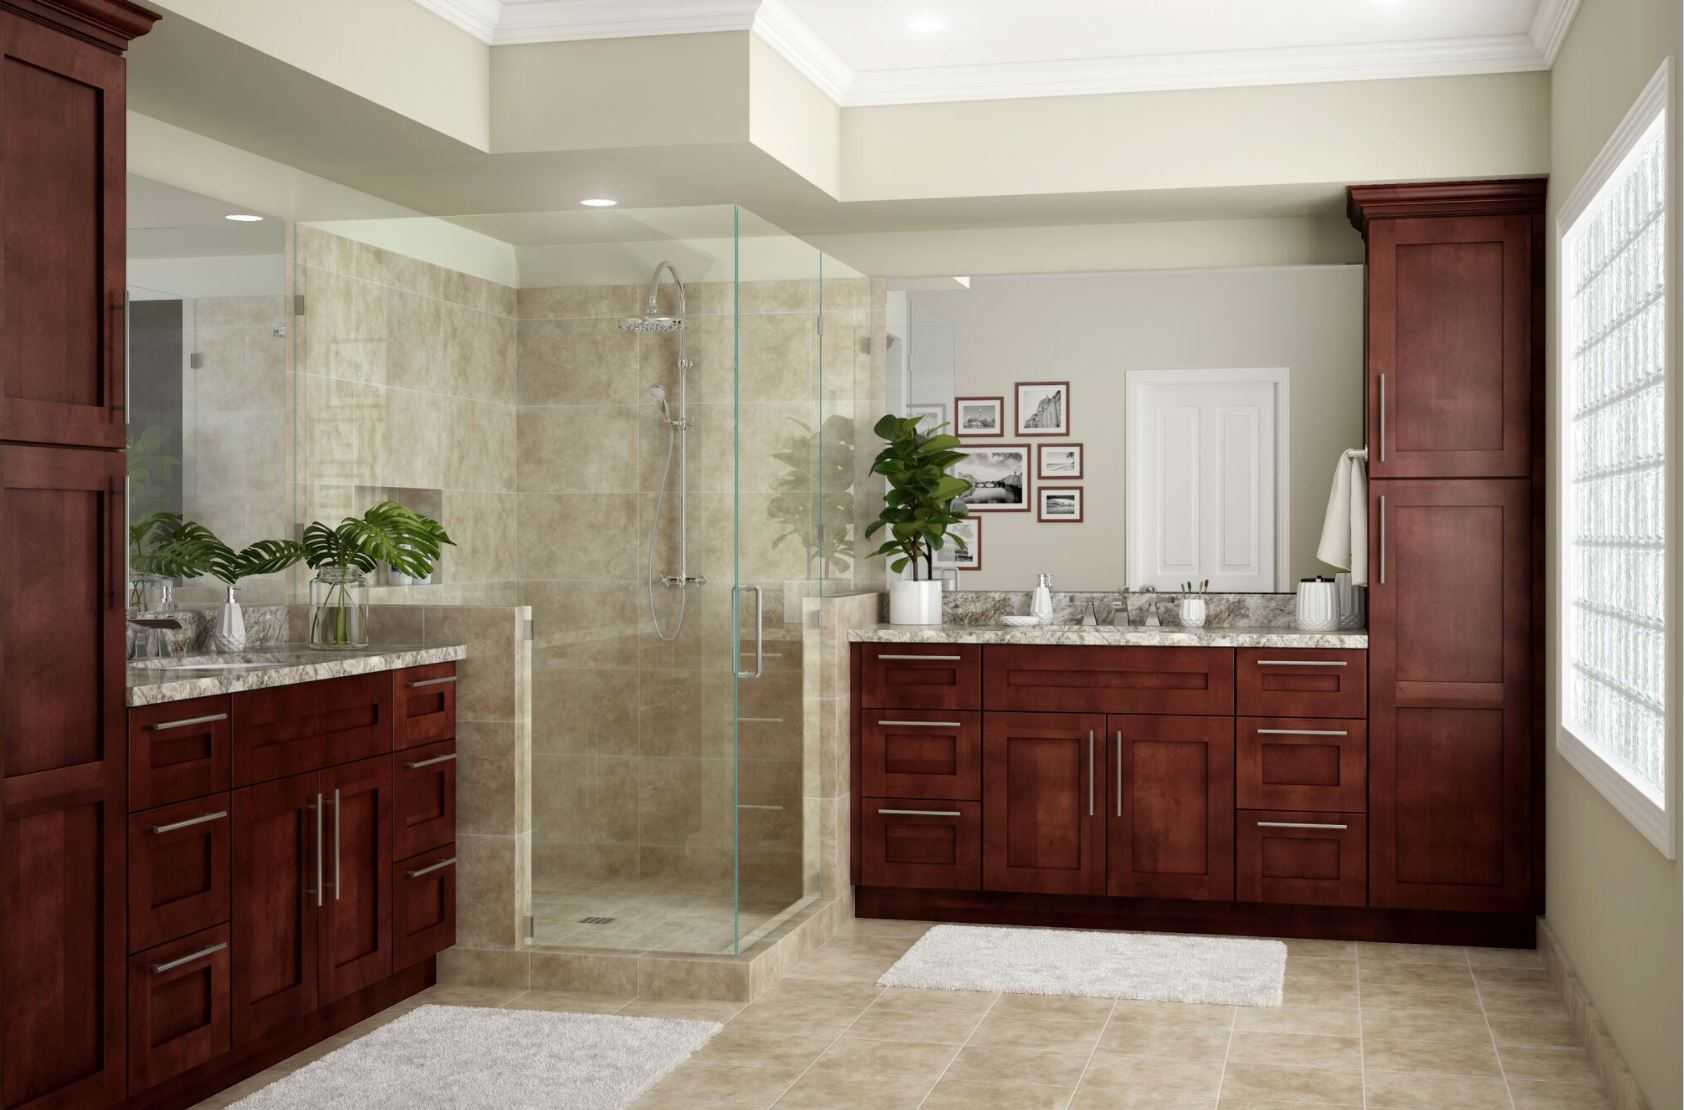 Kingsbridge Pantry Cabinets in Cabernet - Kitchen - The ...